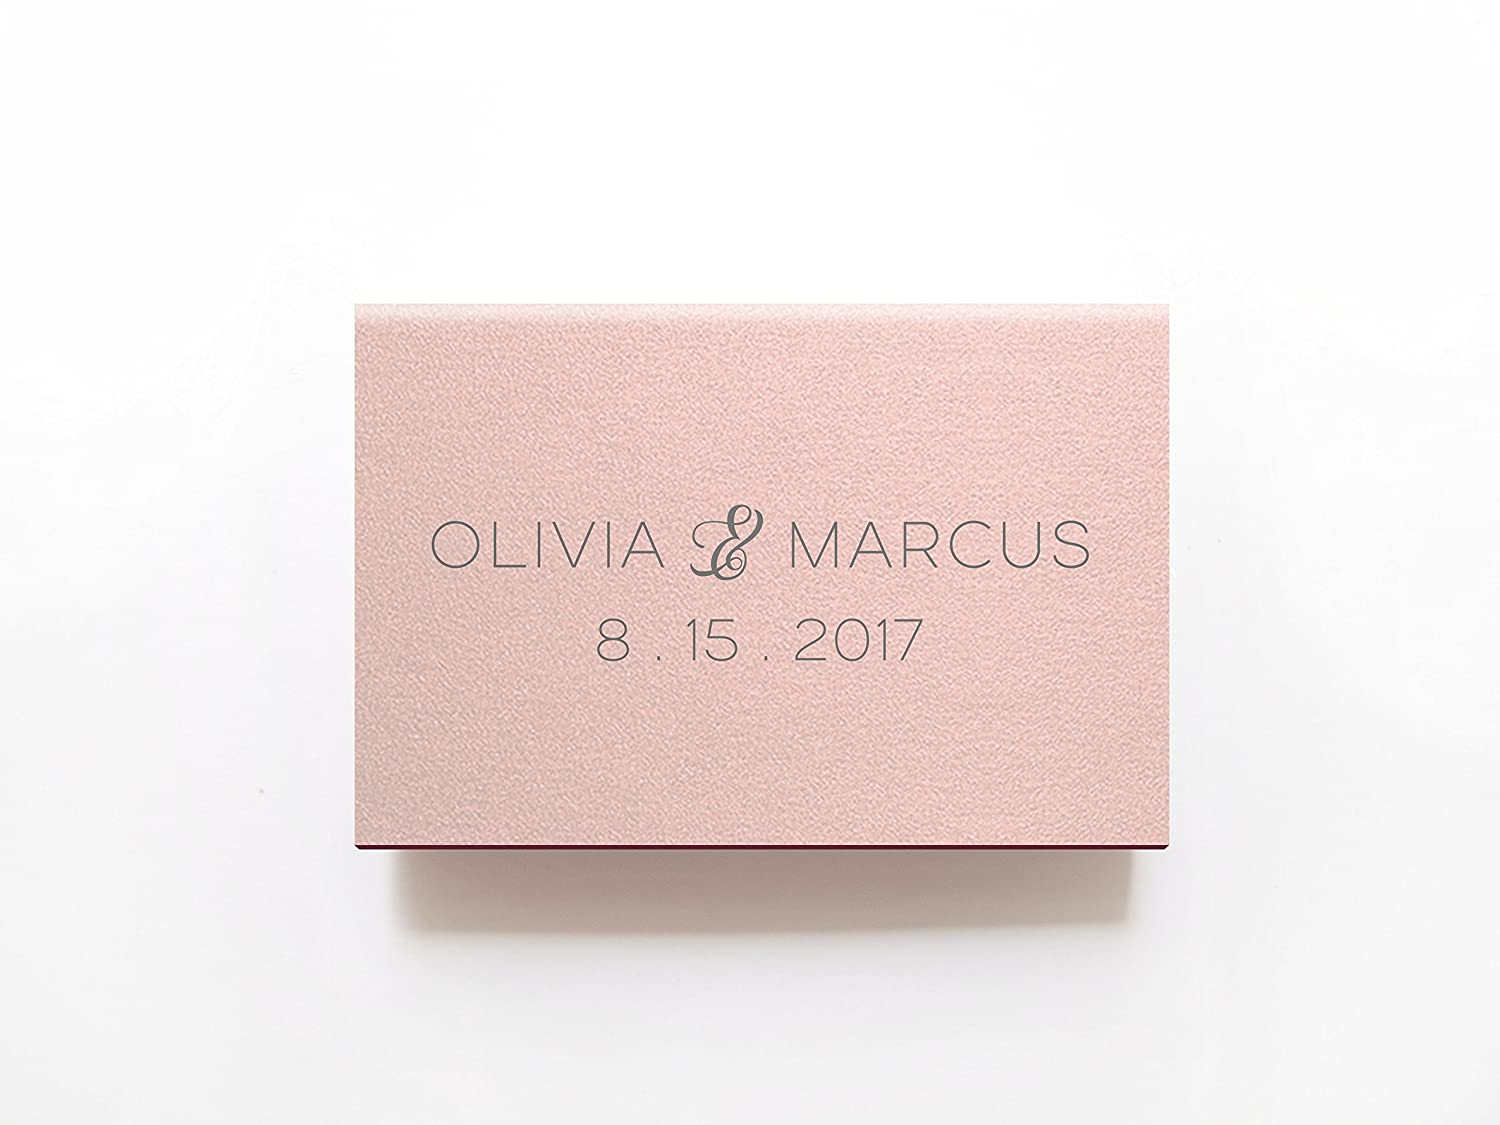 Amazon.com: Cheers Wedding Matchboxes - Personalized Foil ...